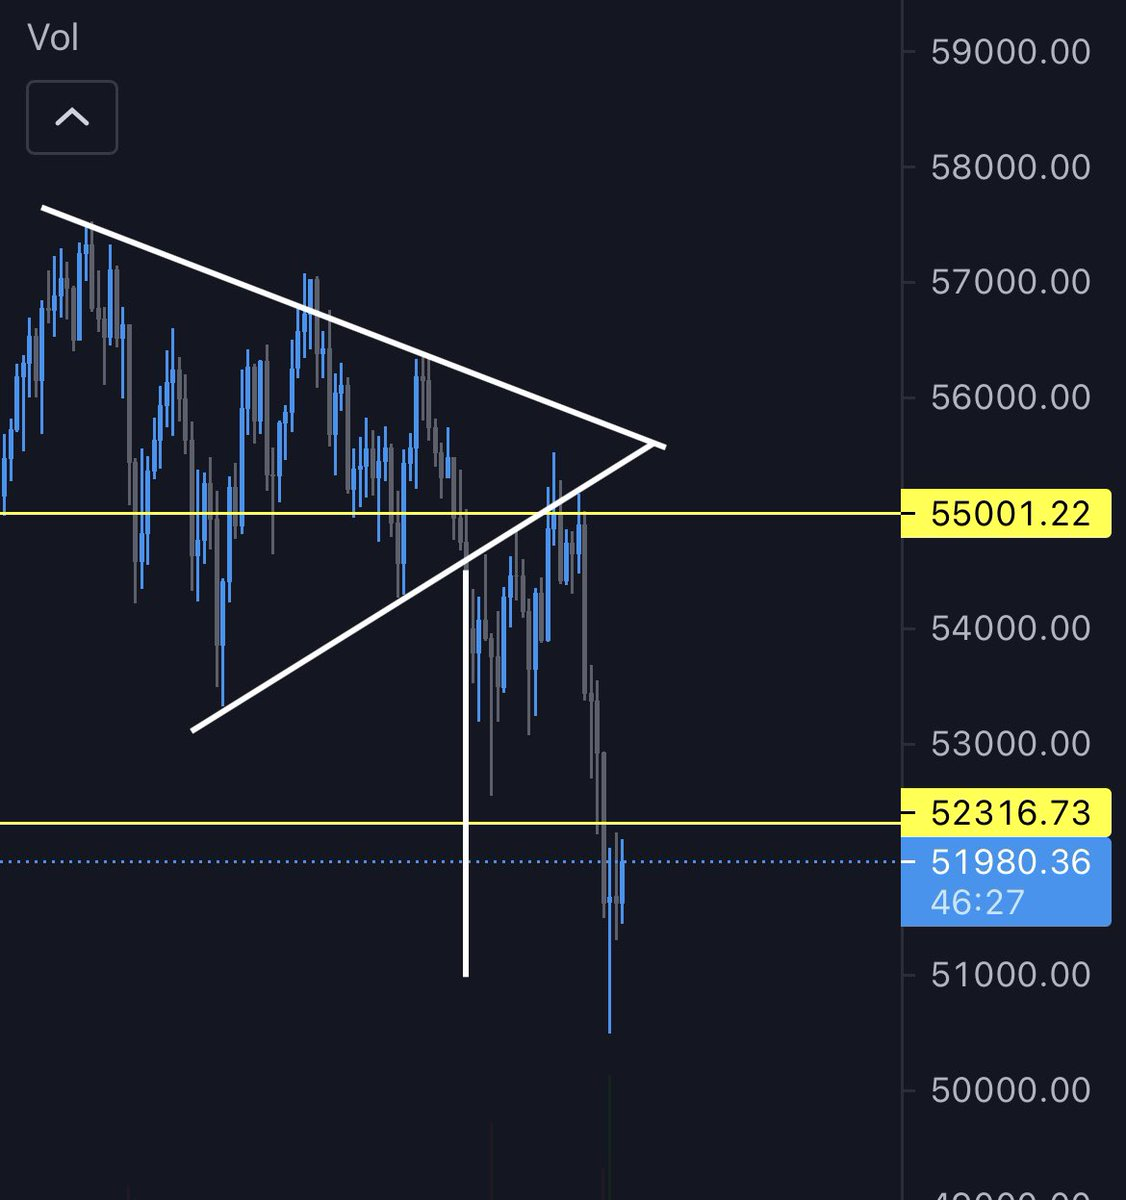 #Bitcoin broke below and hit our short target. Now back to only up? https://t.co/NxbKQdJ1cx https://t.co/tugXulEUU8